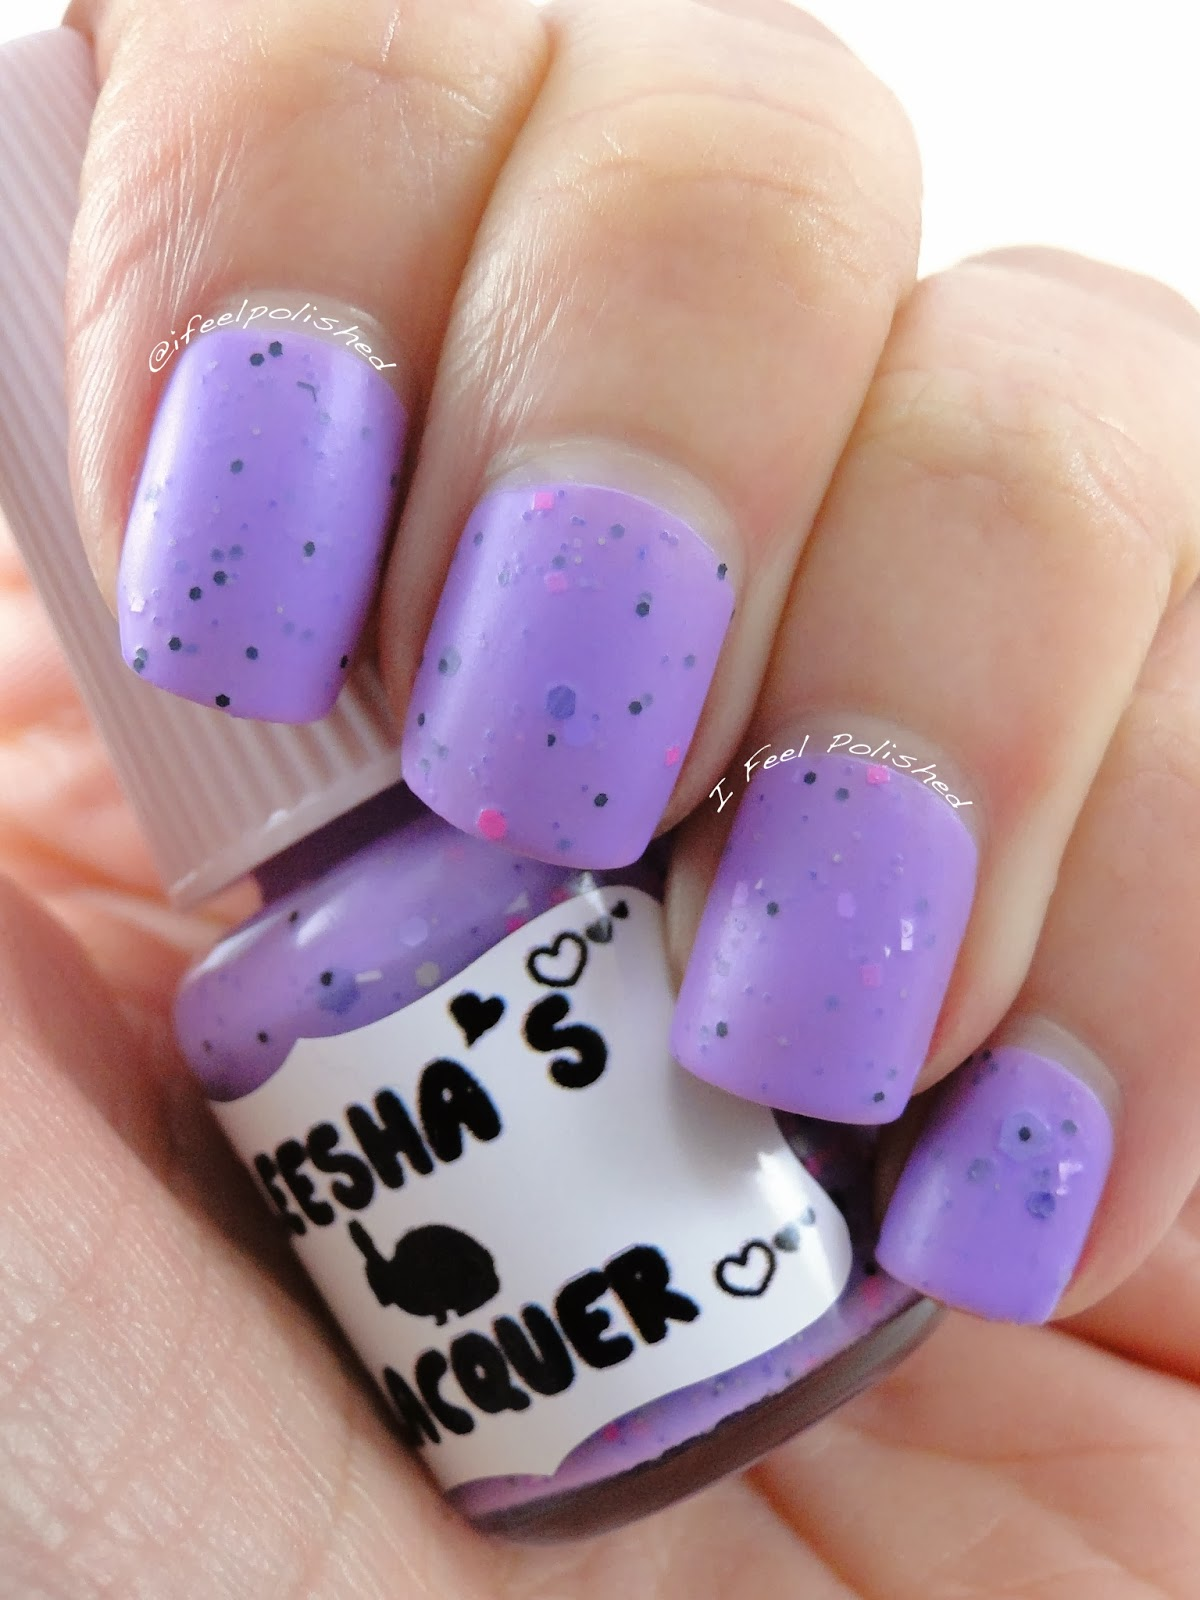 Leesha's Lacquer Life of the Party